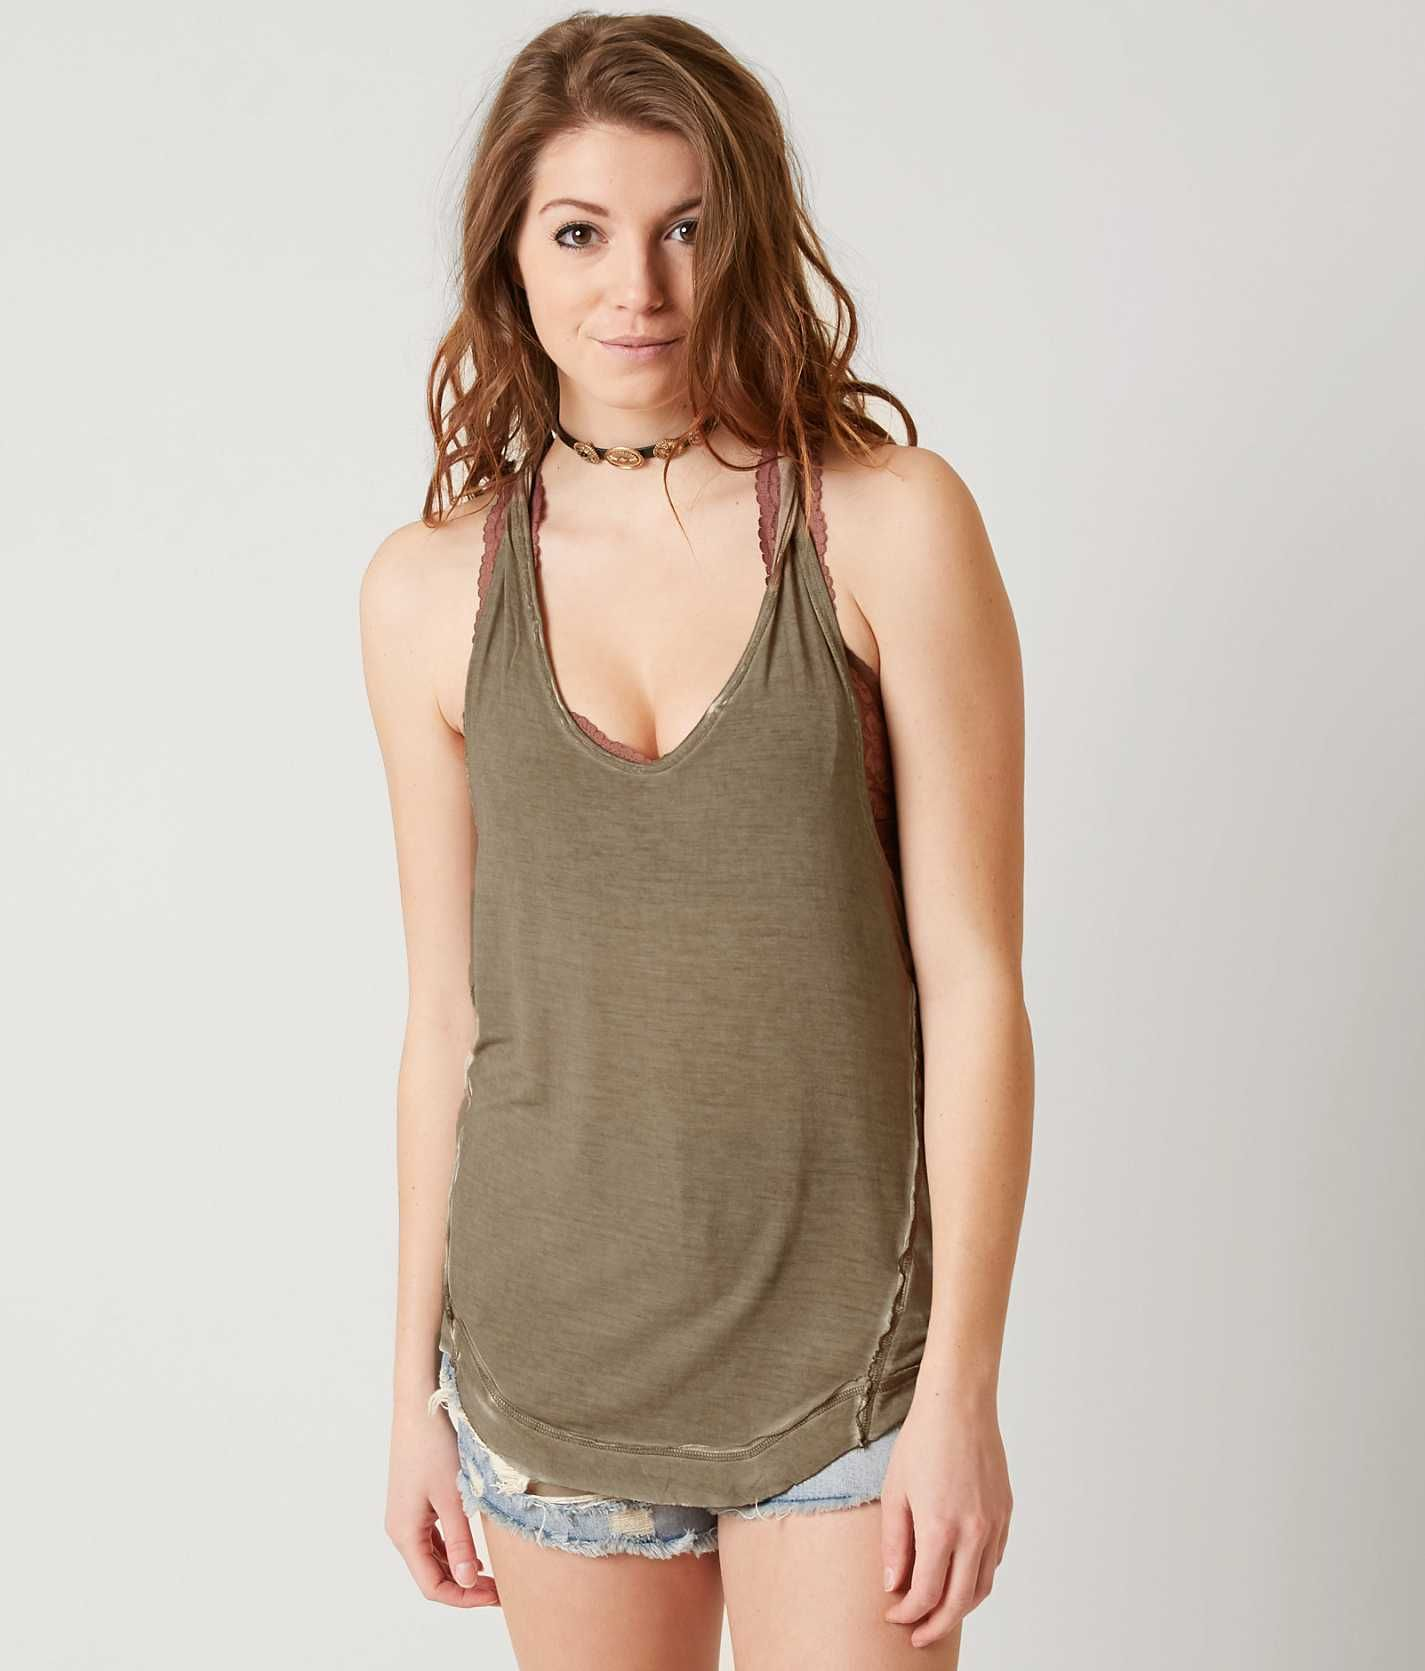 619c73bd55f783 Free People Nectarine Tank Top - Women s Tank Tops in Rosemary ...